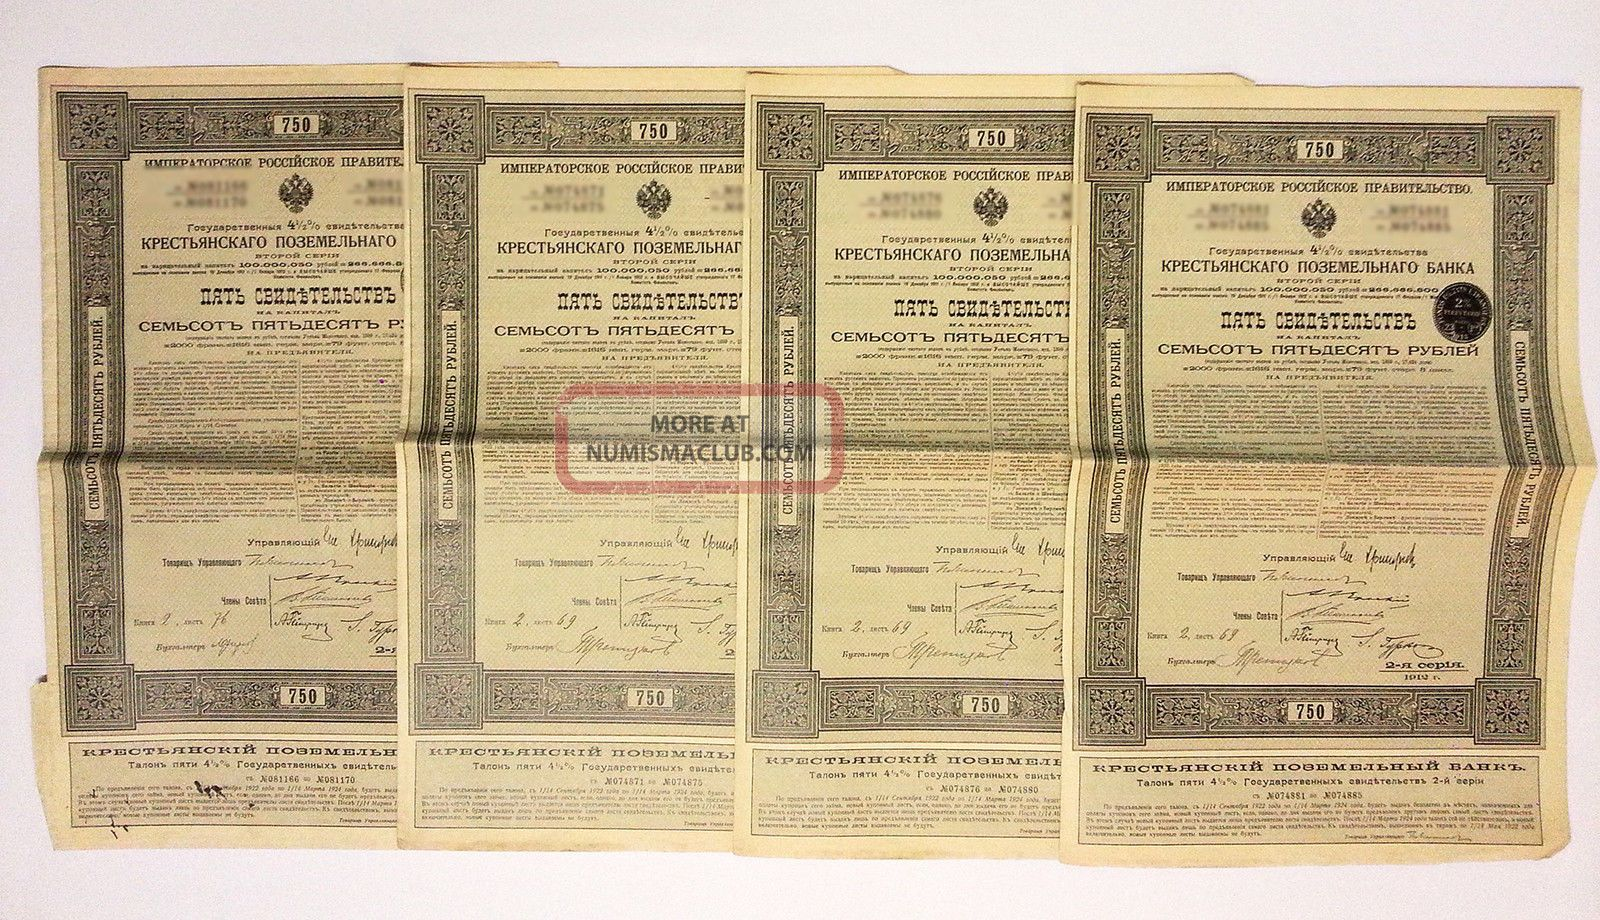 Russia - Peasant Land Bank 4,  5 Five Certificates Of 750 Rbls 1912 – X4 Stocks & Bonds, Scripophily photo